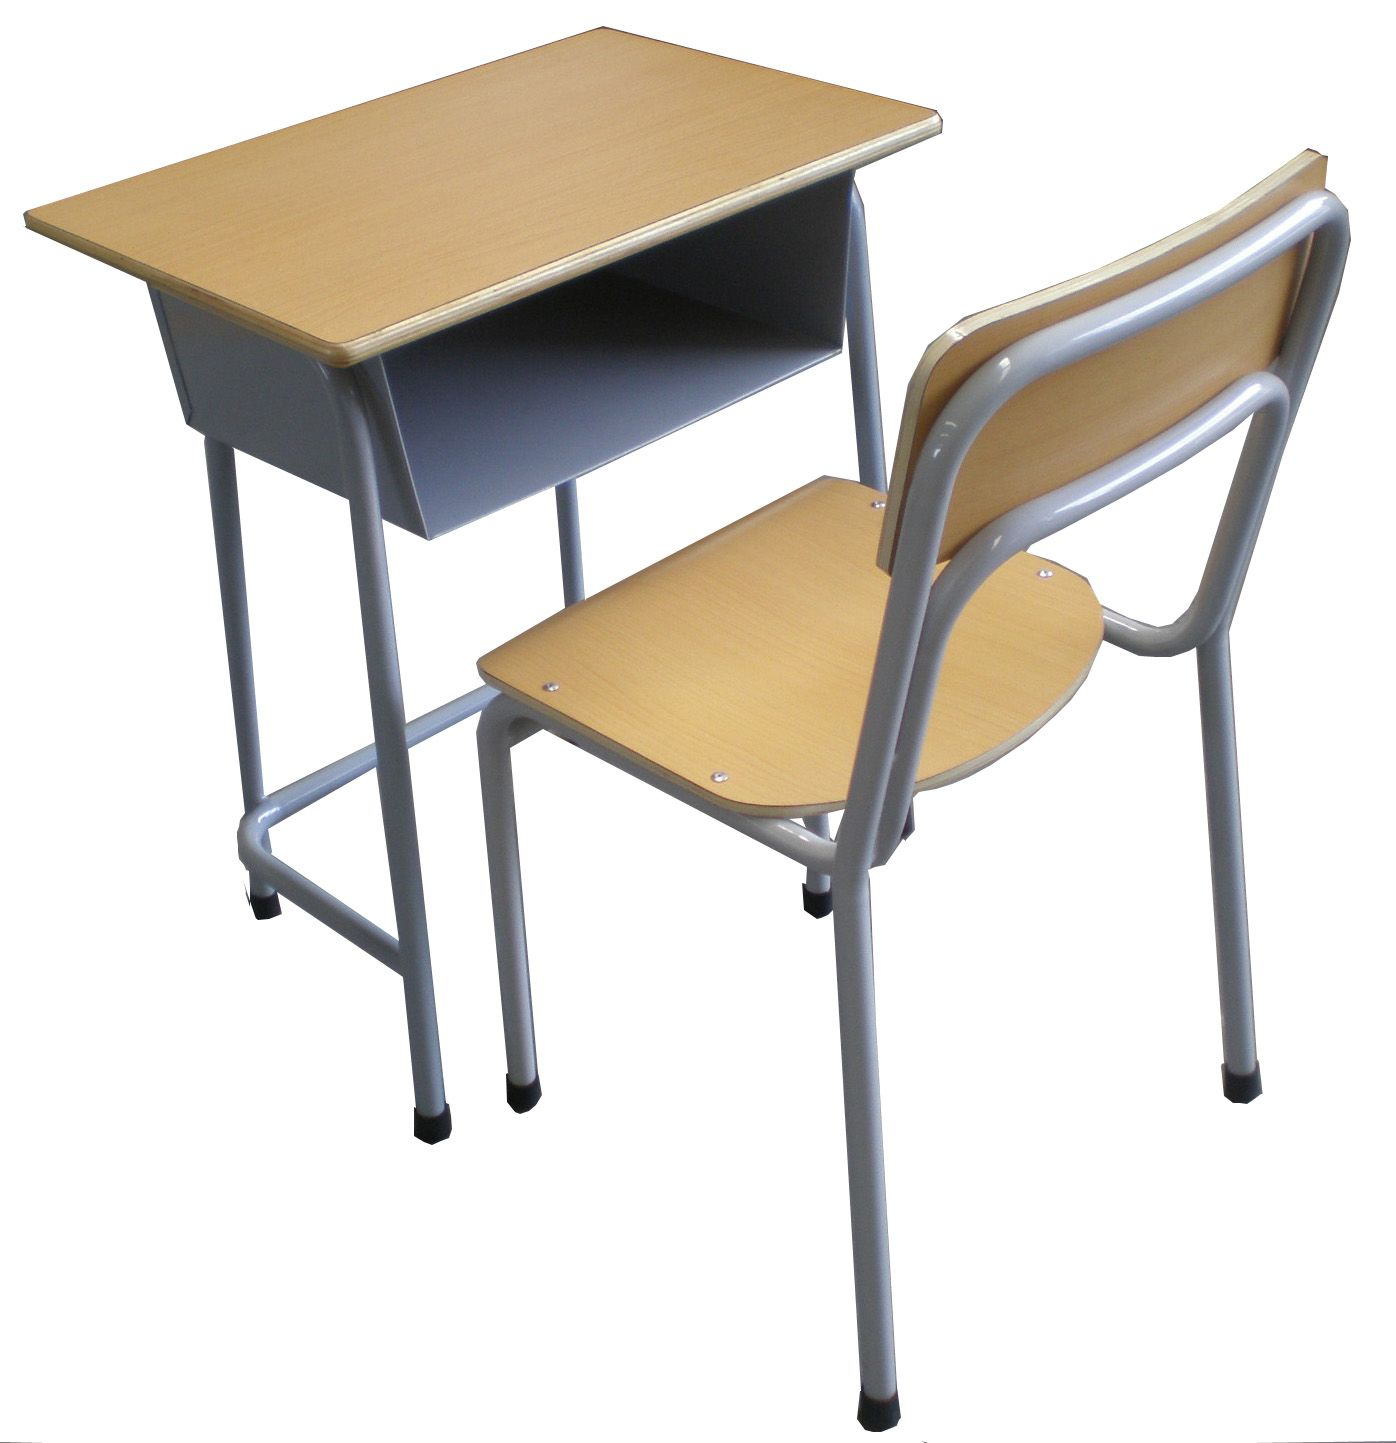 Pictures Of School Desks - ClipArt Best